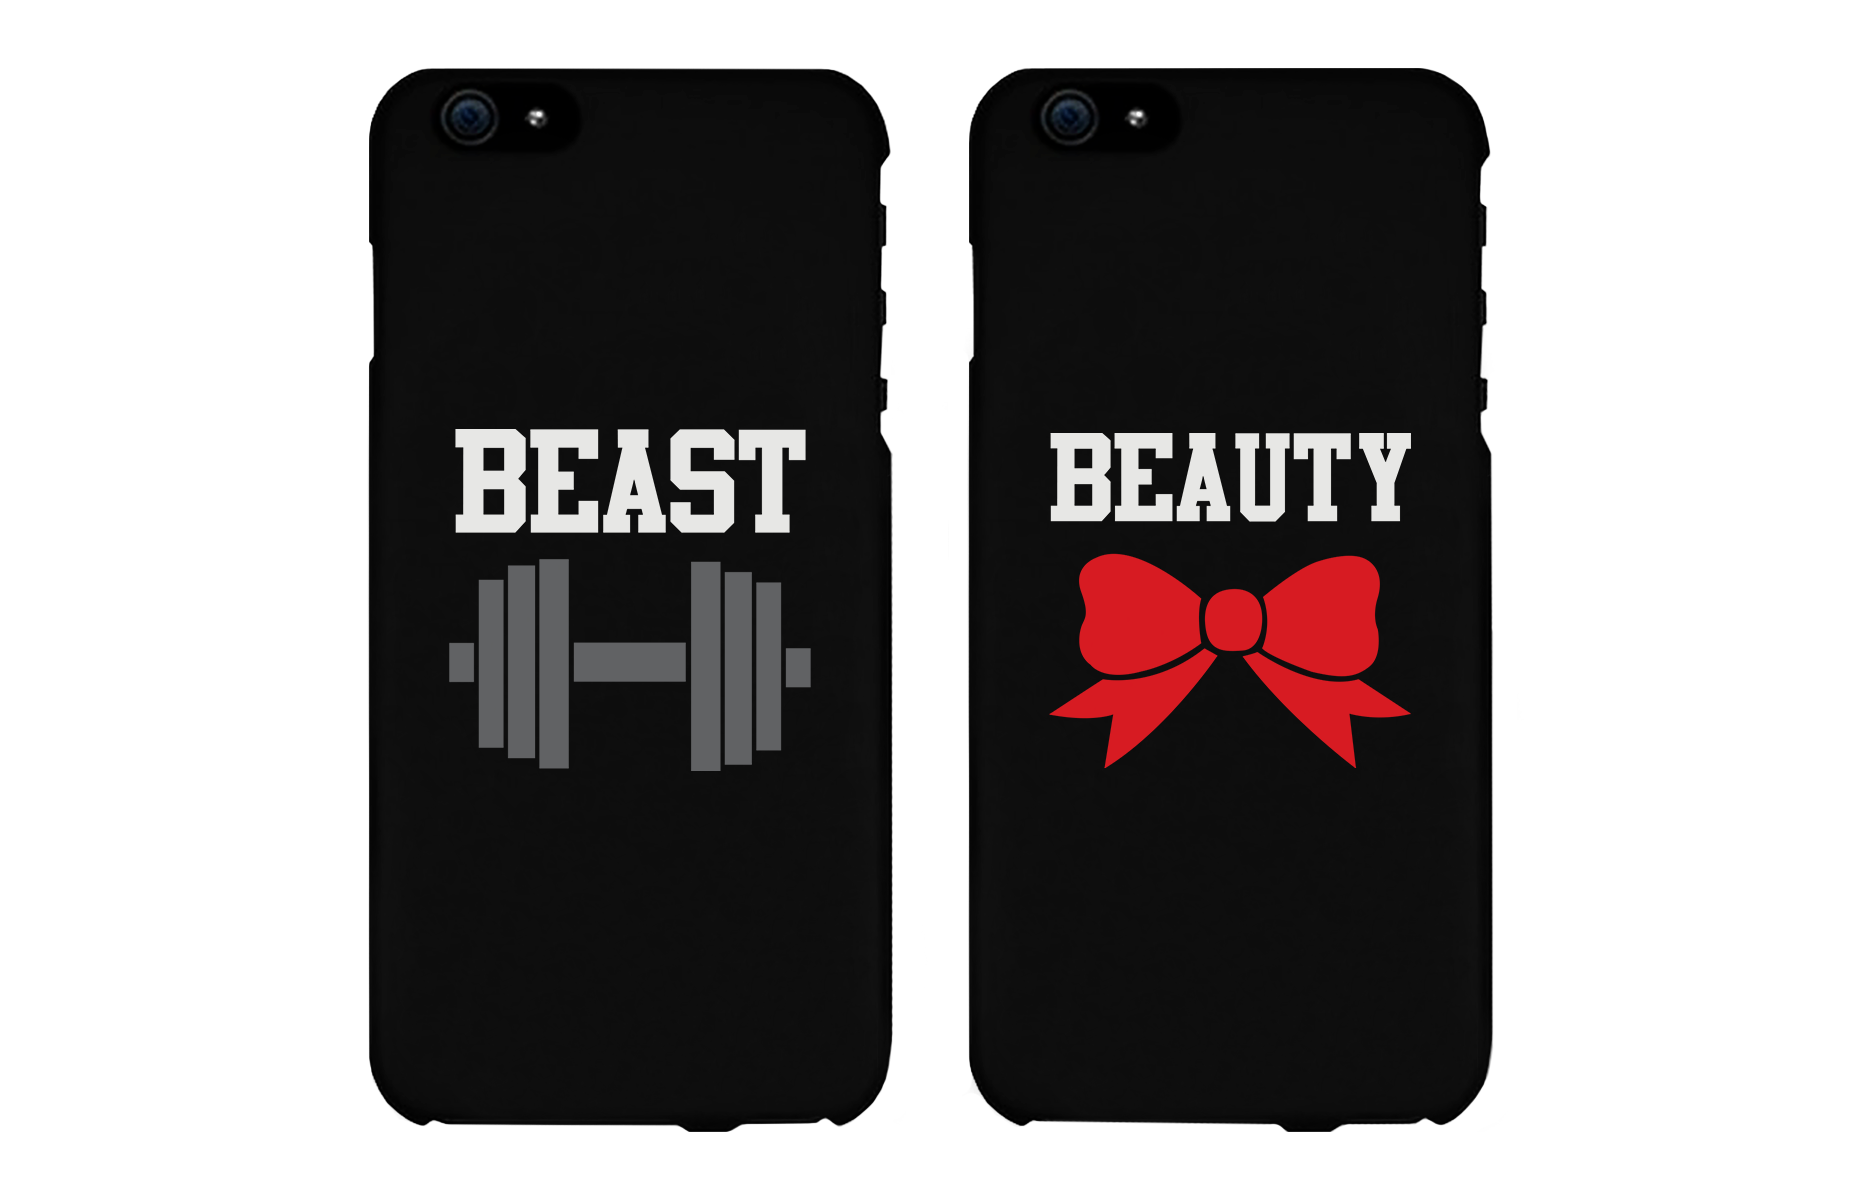 Beauty and Beast Matching Couple Phone Cases